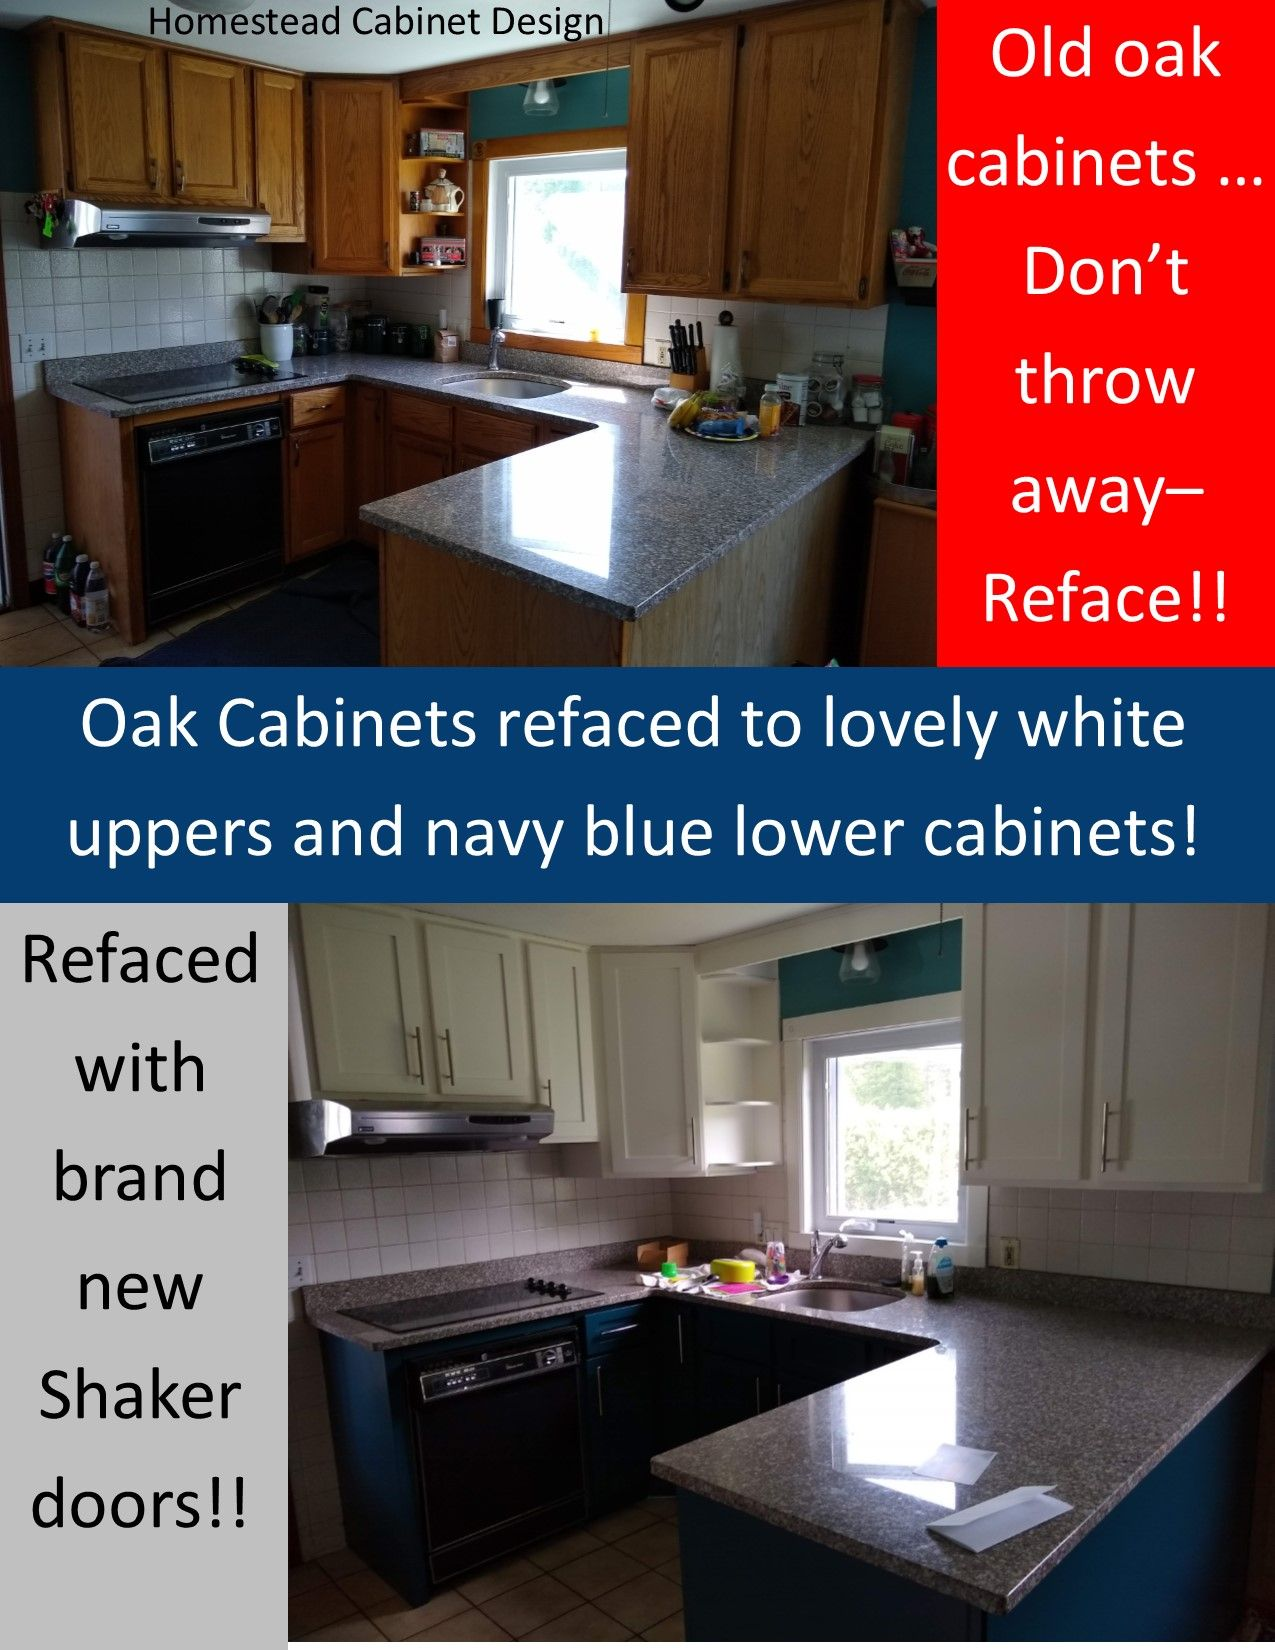 Reface Your Kitchen Now In 2020 Cabinet Design Oak Cabinets Reface